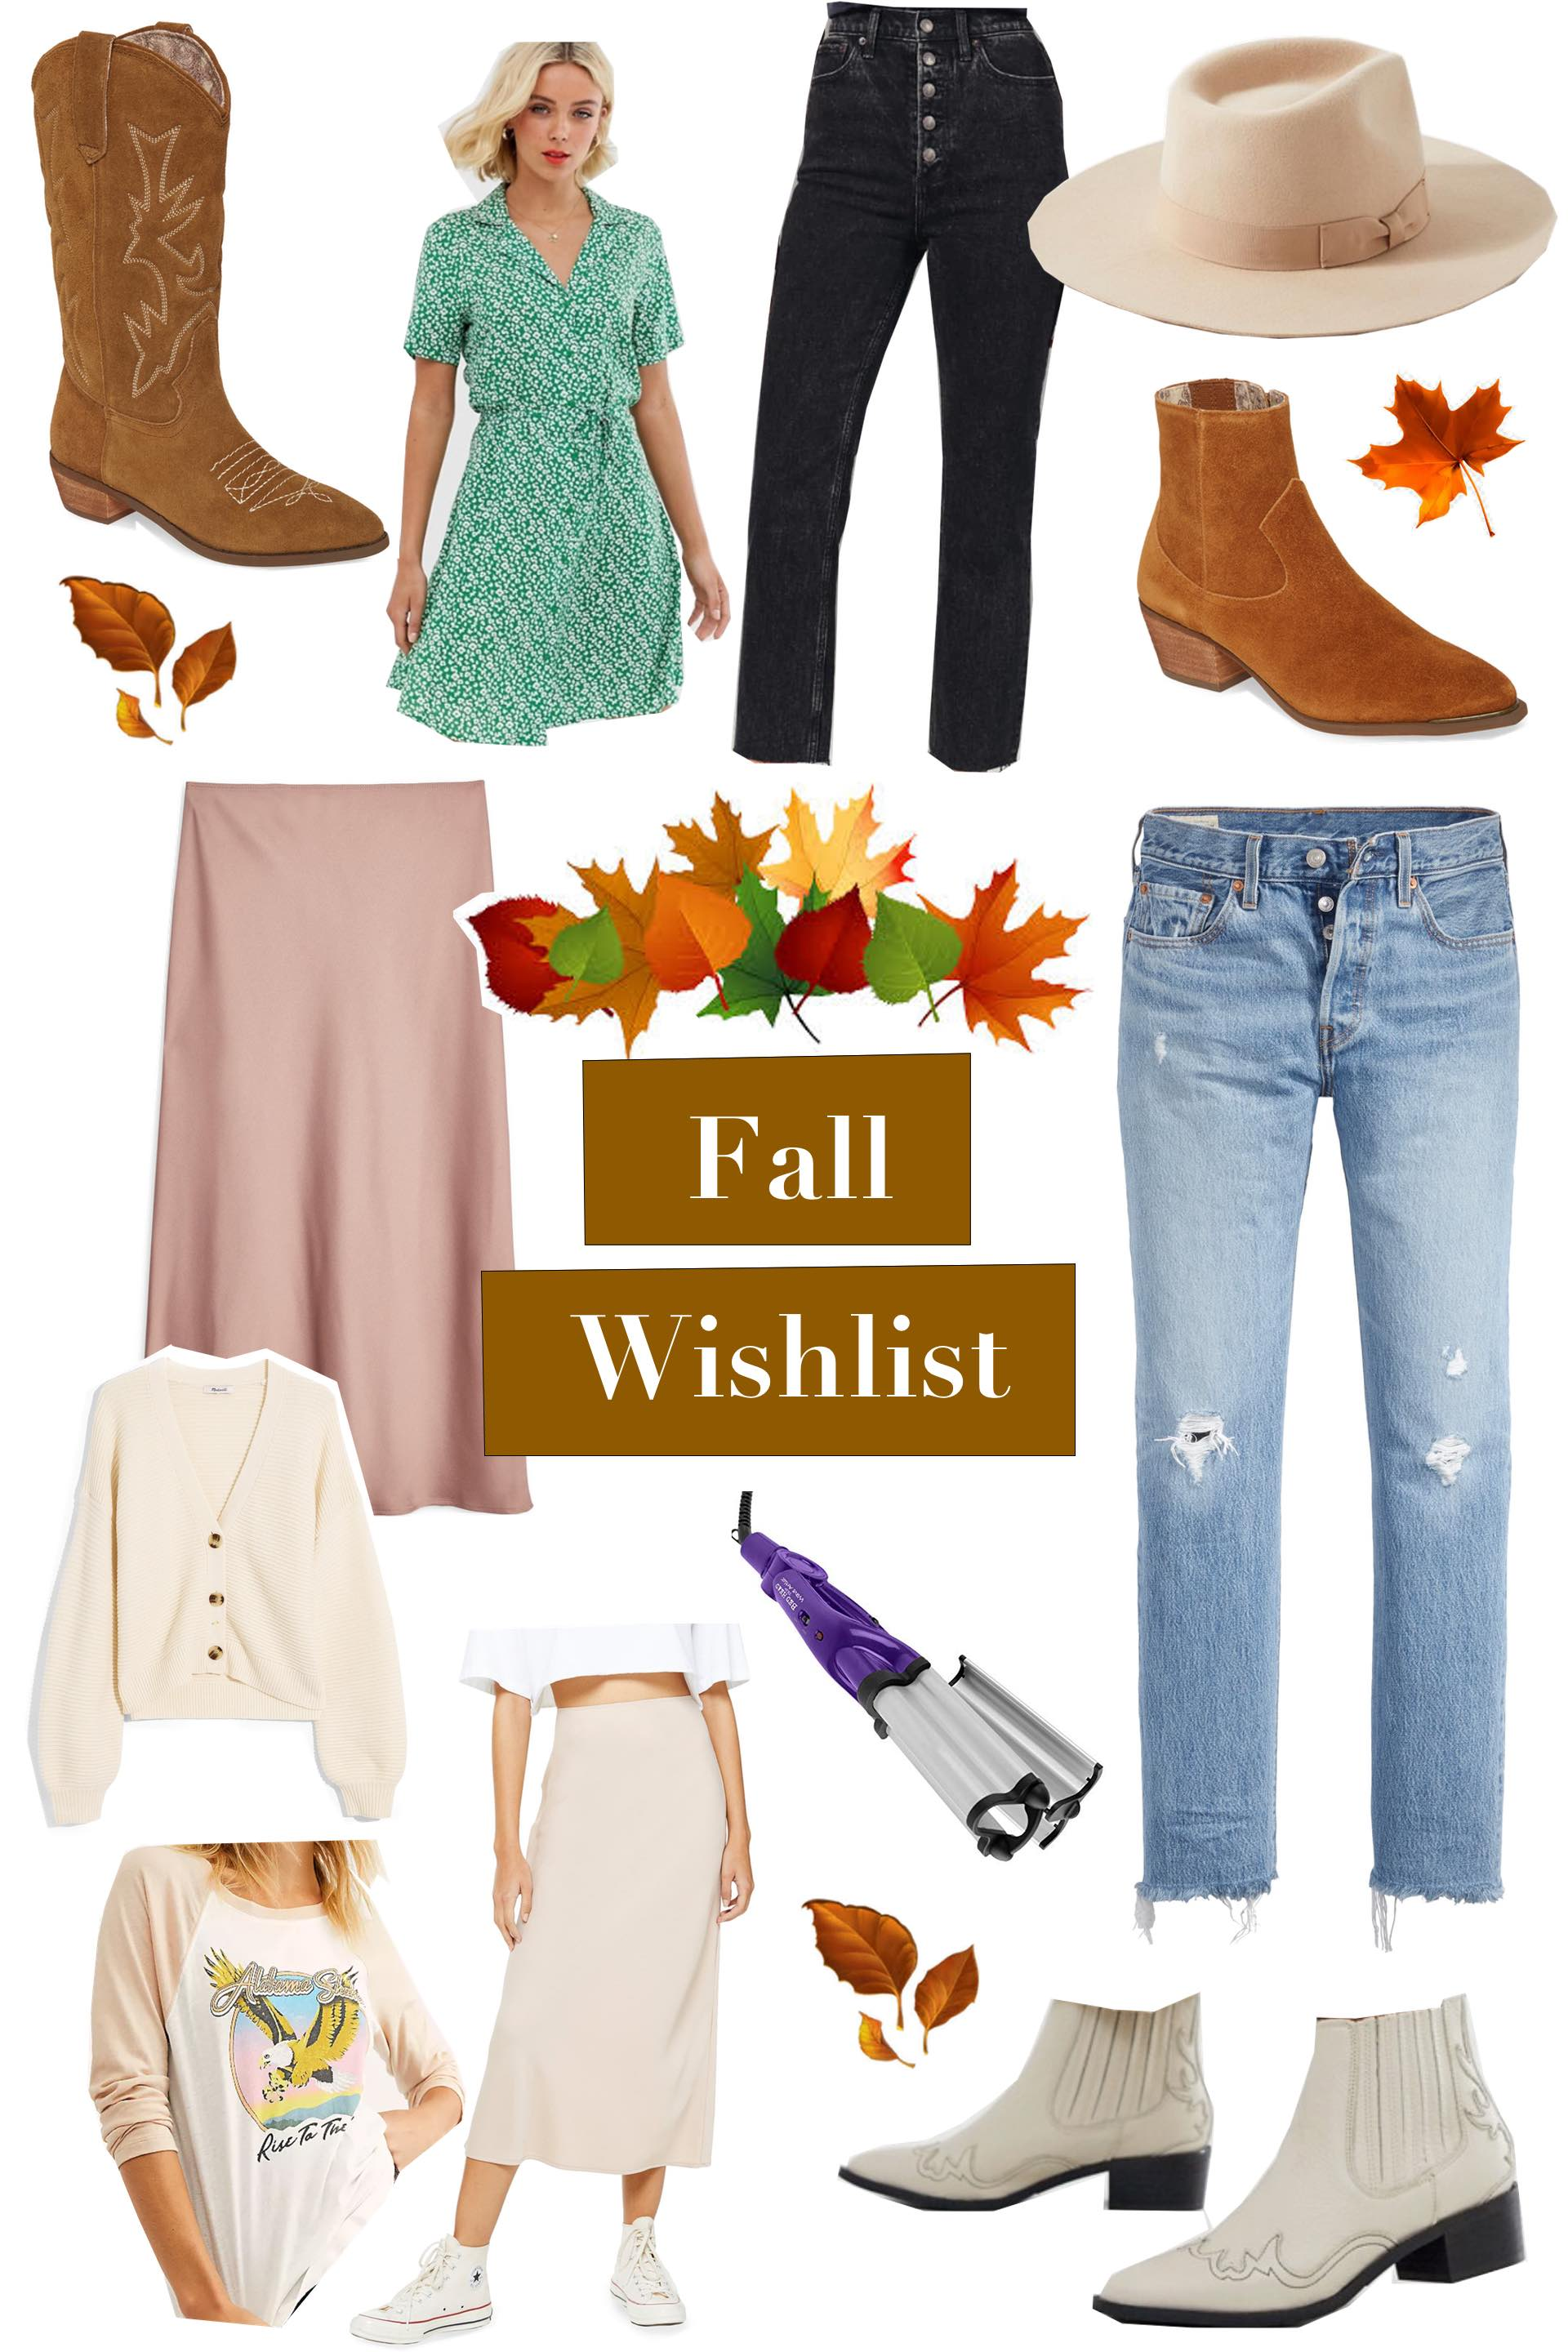 a list of trendy fall items